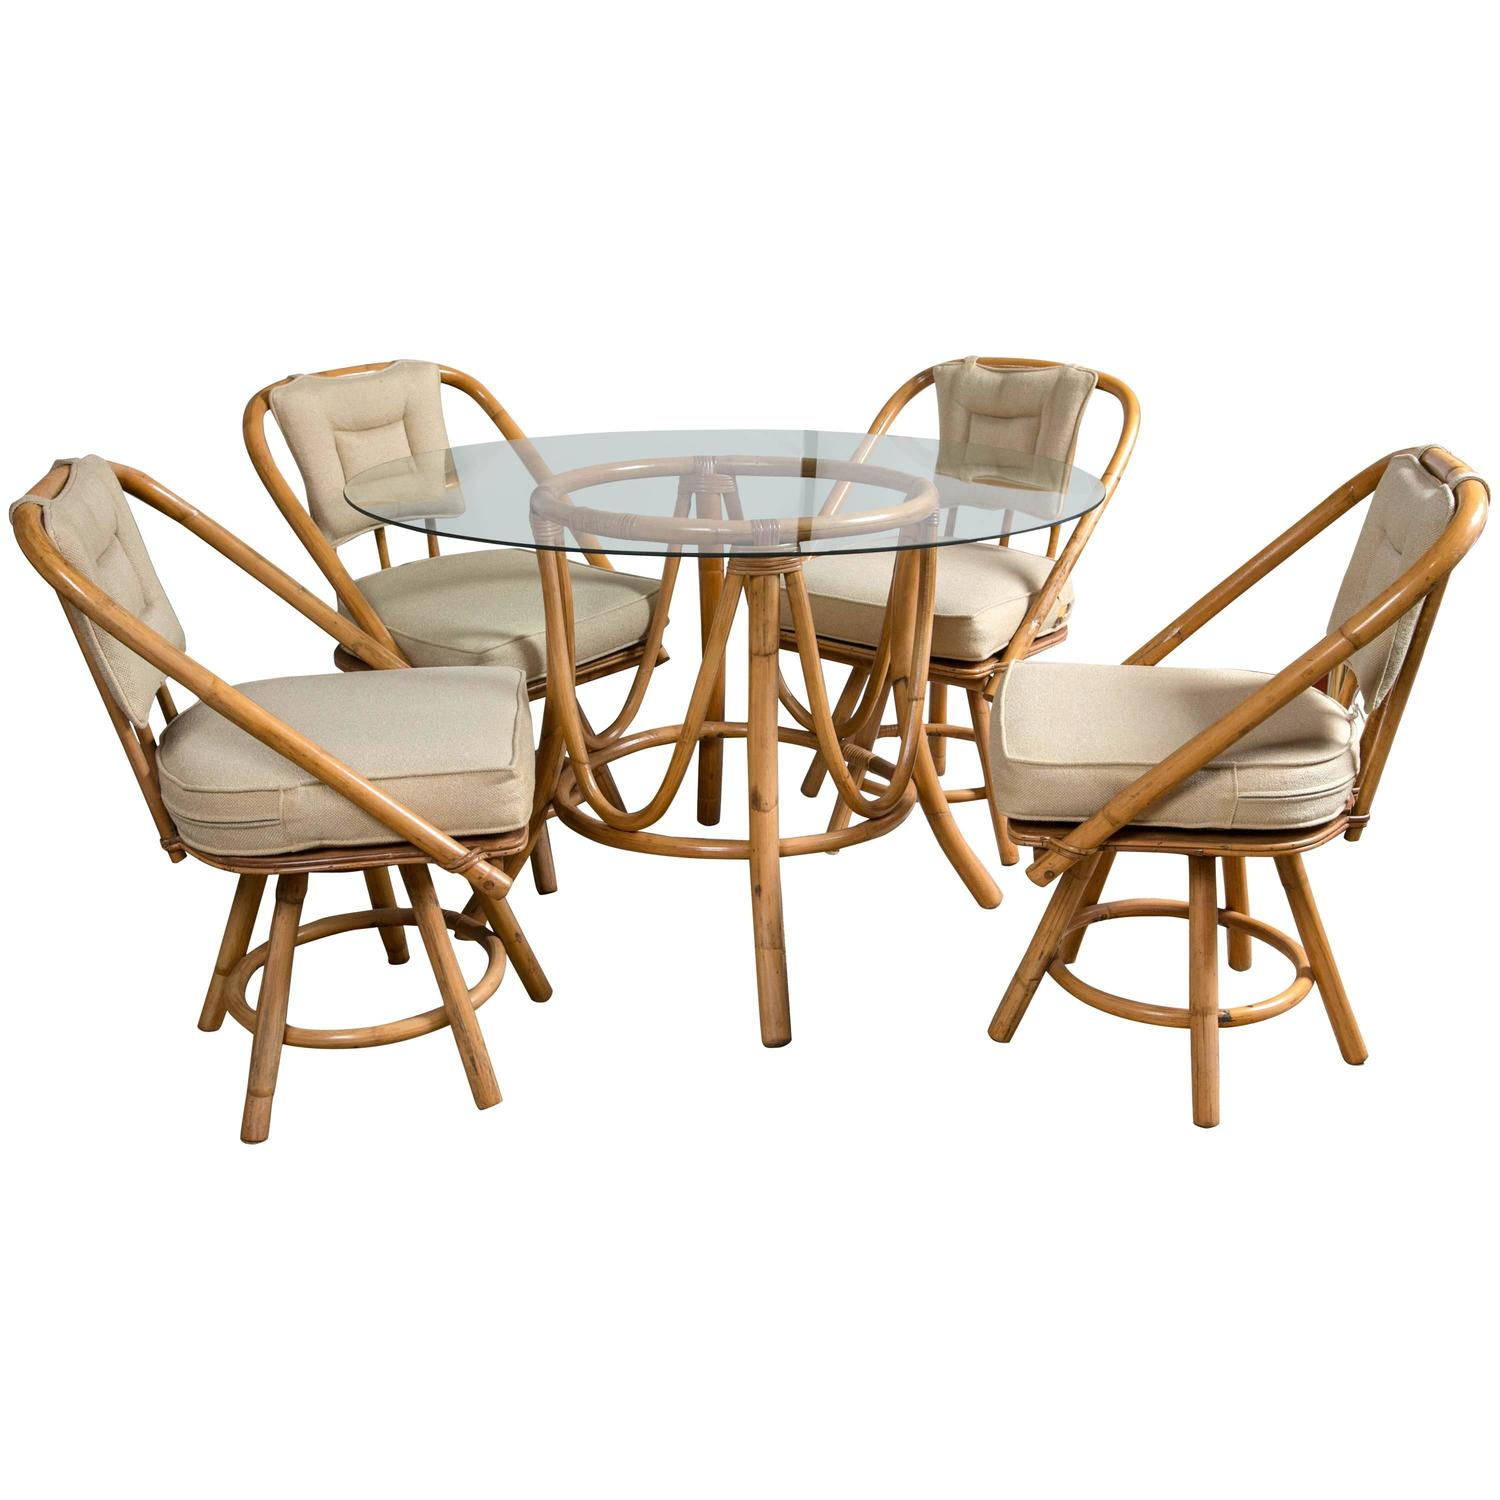 Vintage bamboo rattan round dining table and chairs at for Round dining table and chairs